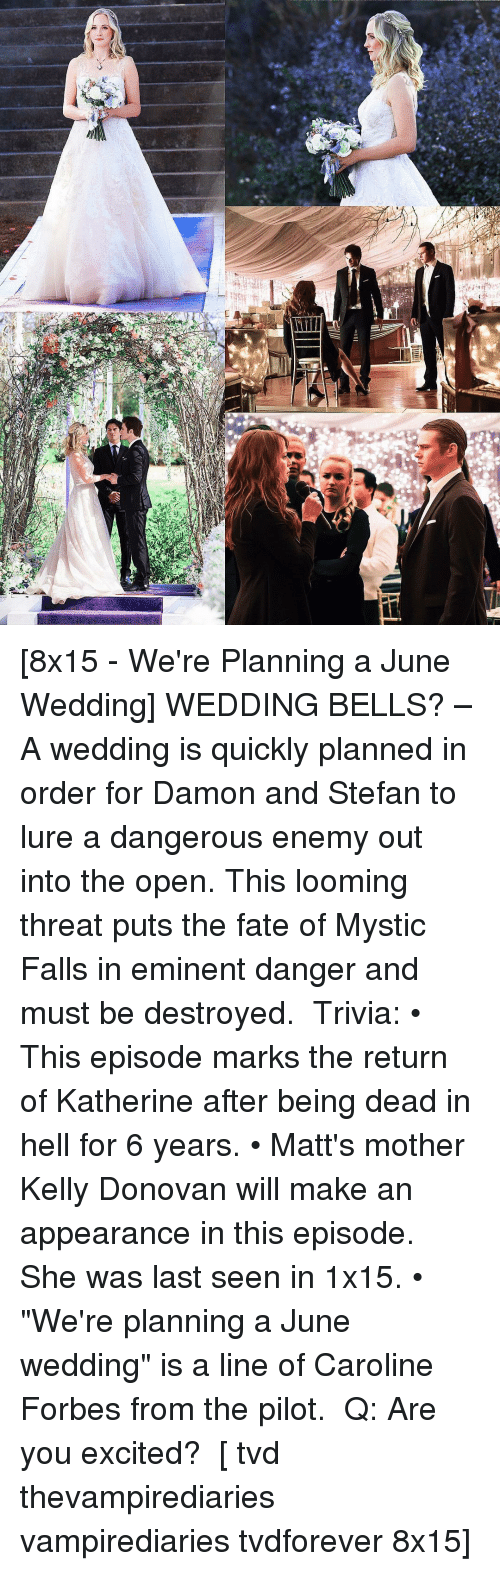 "Memes, Fate, and Mysticism: r [8x15 - We're Planning a June Wedding] WEDDING BELLS? – A wedding is quickly planned in order for Damon and Stefan to lure a dangerous enemy out into the open. This looming threat puts the fate of Mystic Falls in eminent danger and must be destroyed. ⠀ Trivia: • This episode marks the return of Katherine after being dead in hell for 6 years. • Matt's mother Kelly Donovan will make an appearance in this episode. She was last seen in 1x15. • ""We're planning a June wedding"" is a line of Caroline Forbes from the pilot. ⠀ Q: Are you excited? ⠀ [ tvd thevampirediaries vampirediaries tvdforever 8x15]"